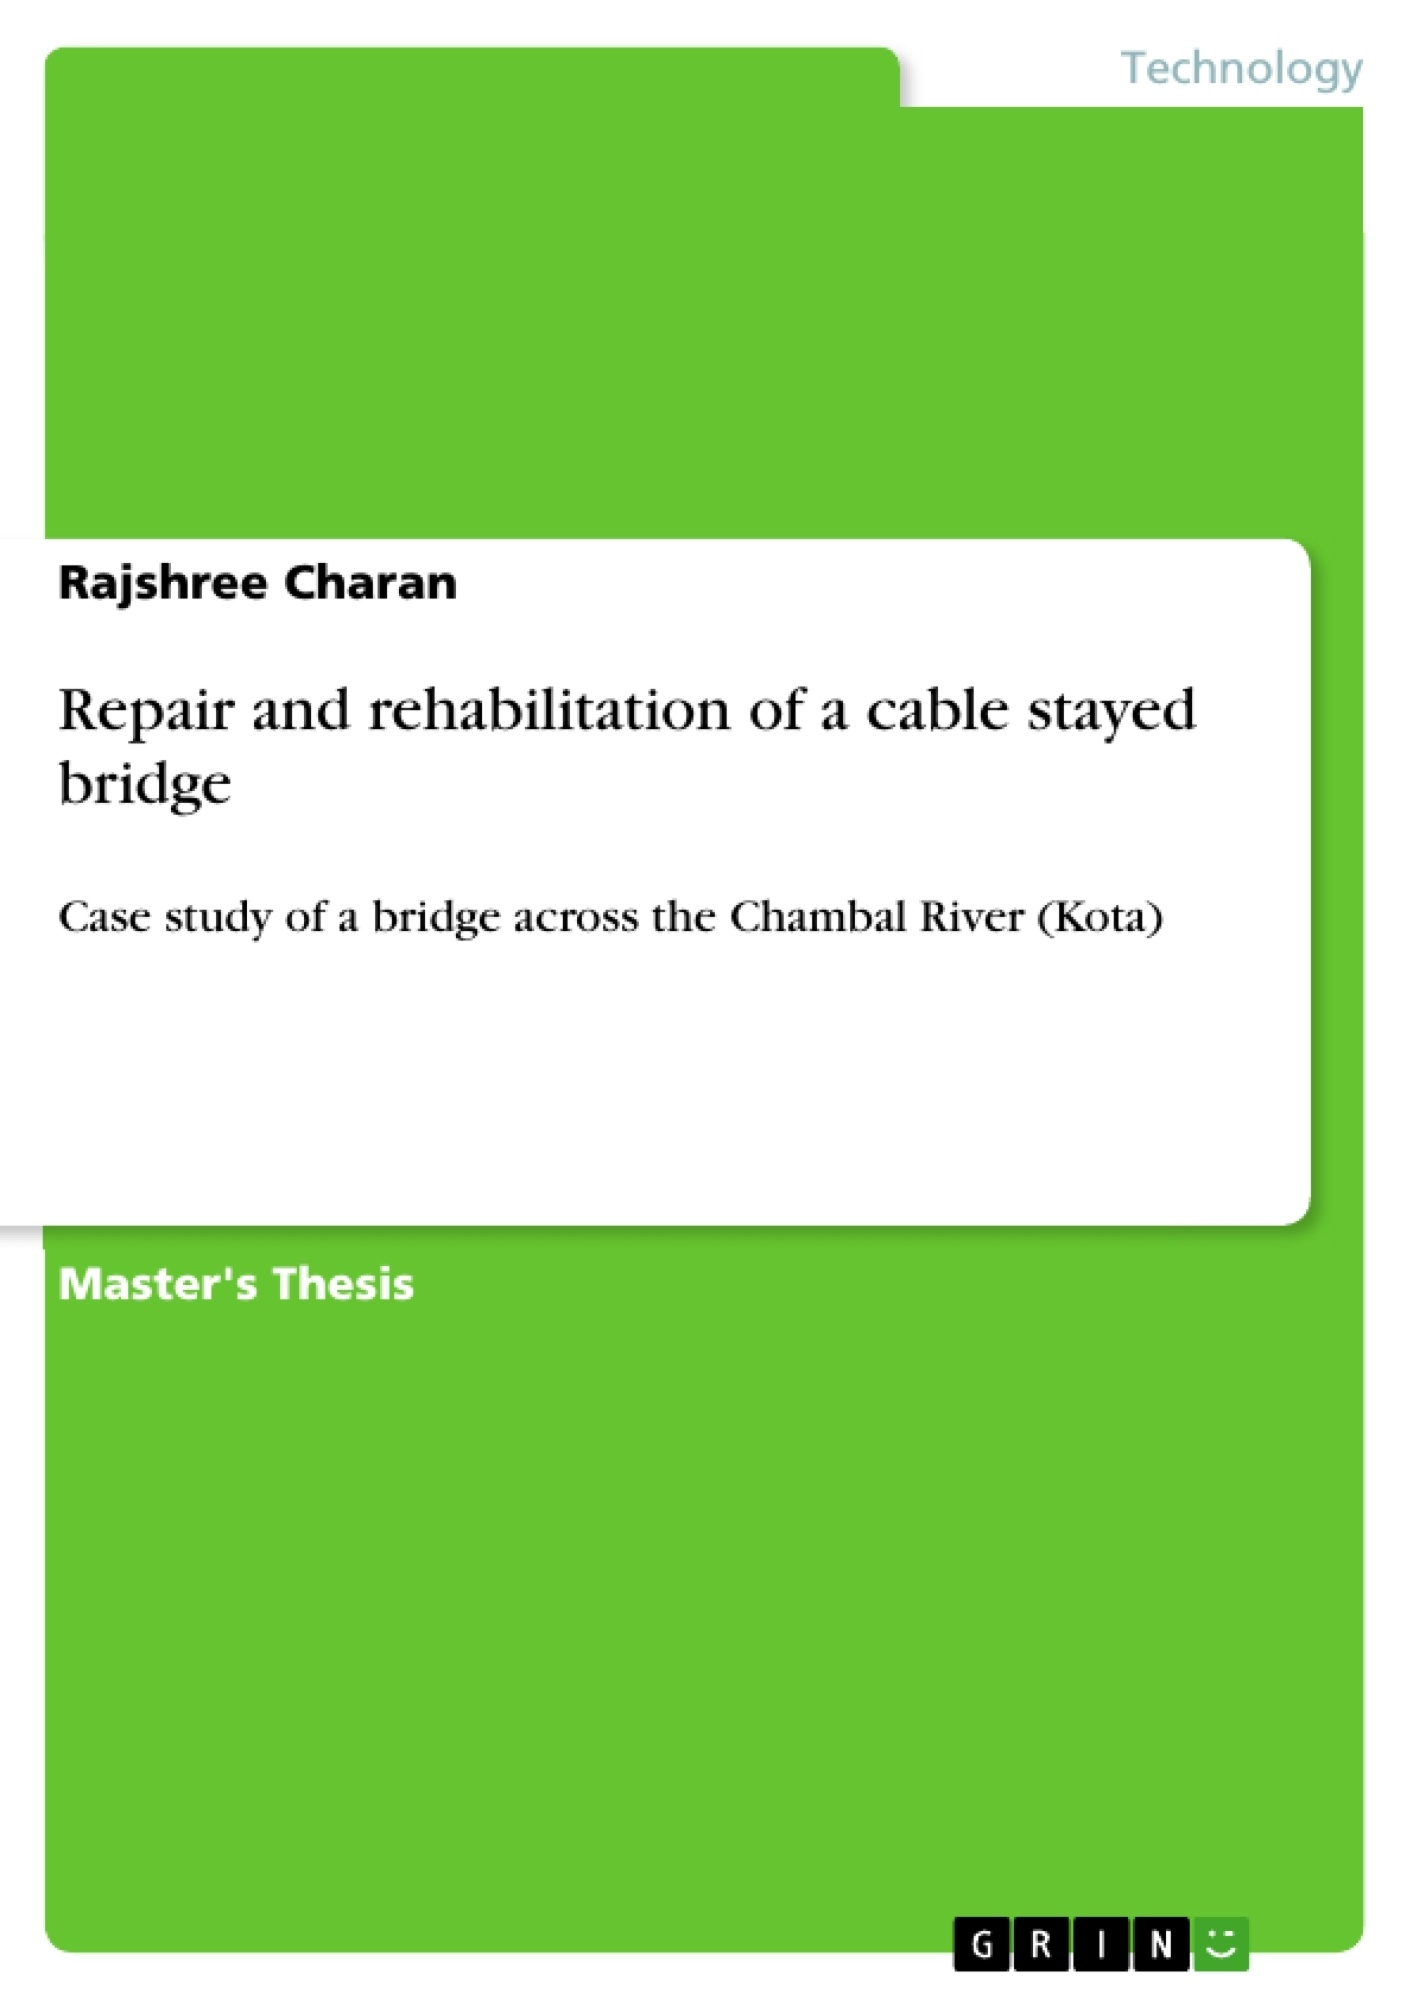 Title: Repair and rehabilitation of a cable stayed bridge